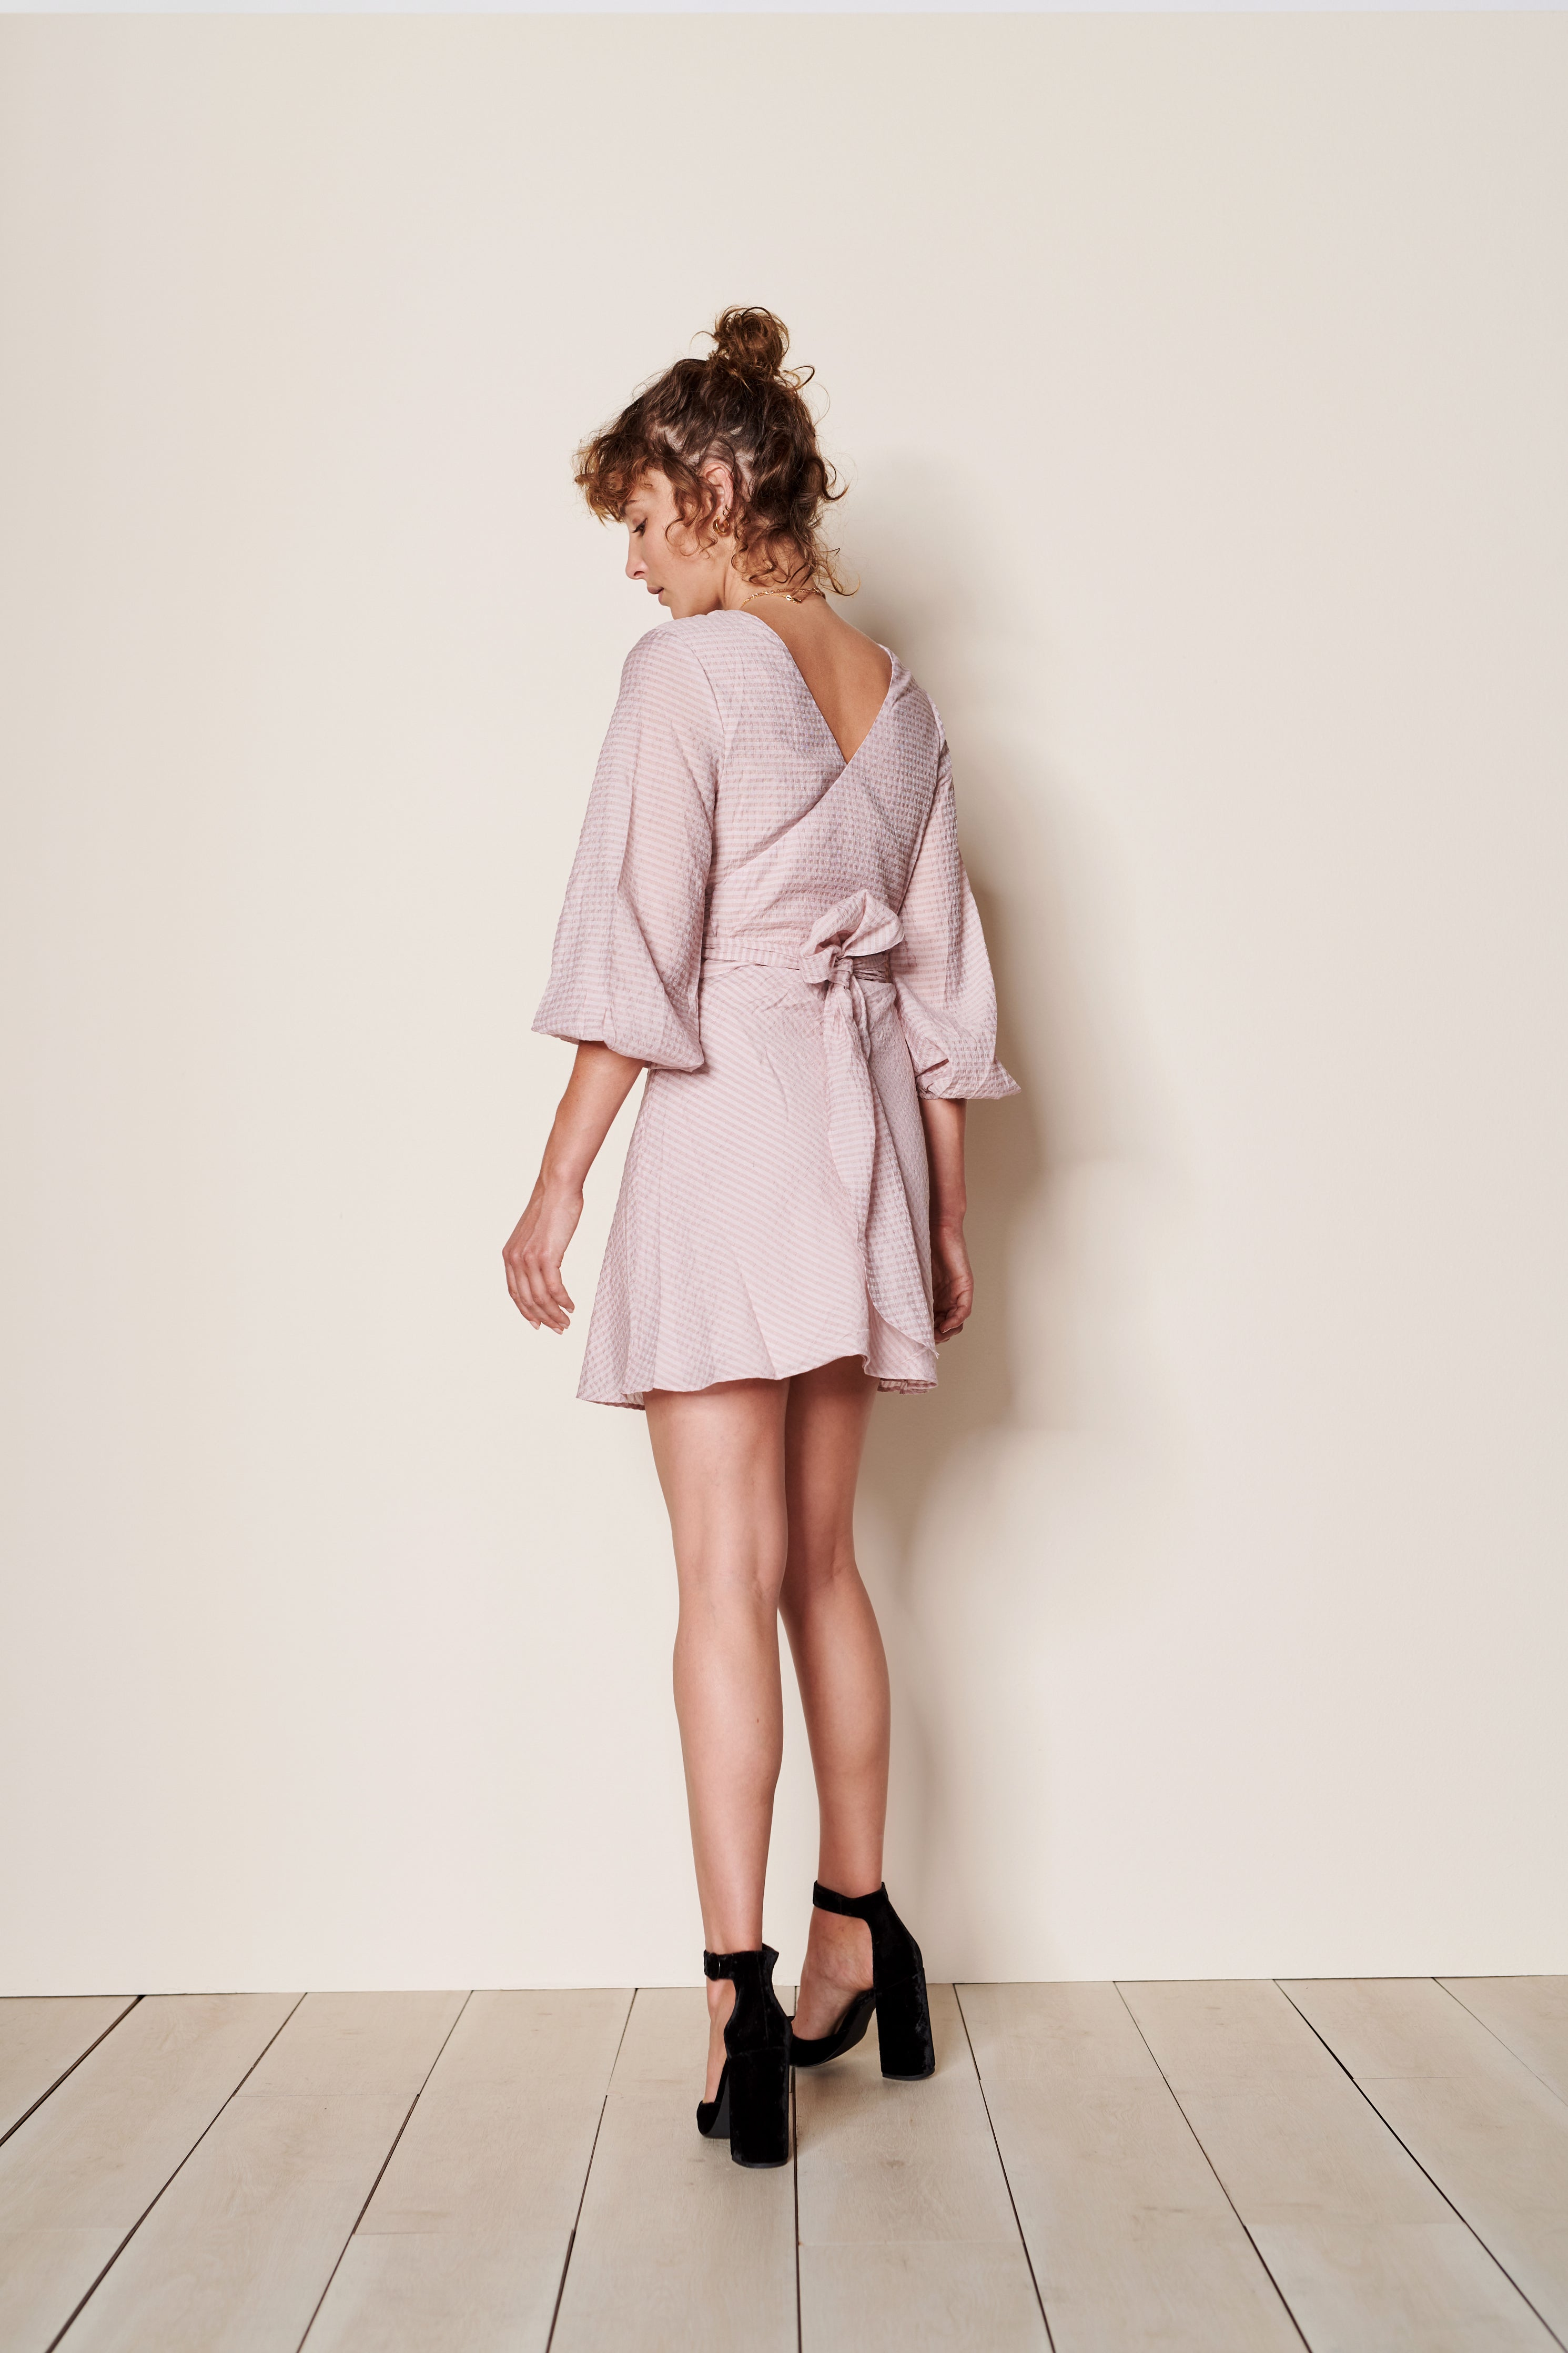 The East Order Penelope Wrap Dress - Stevie May, The East Order, Talulah, Pasduchas, Everly Collective